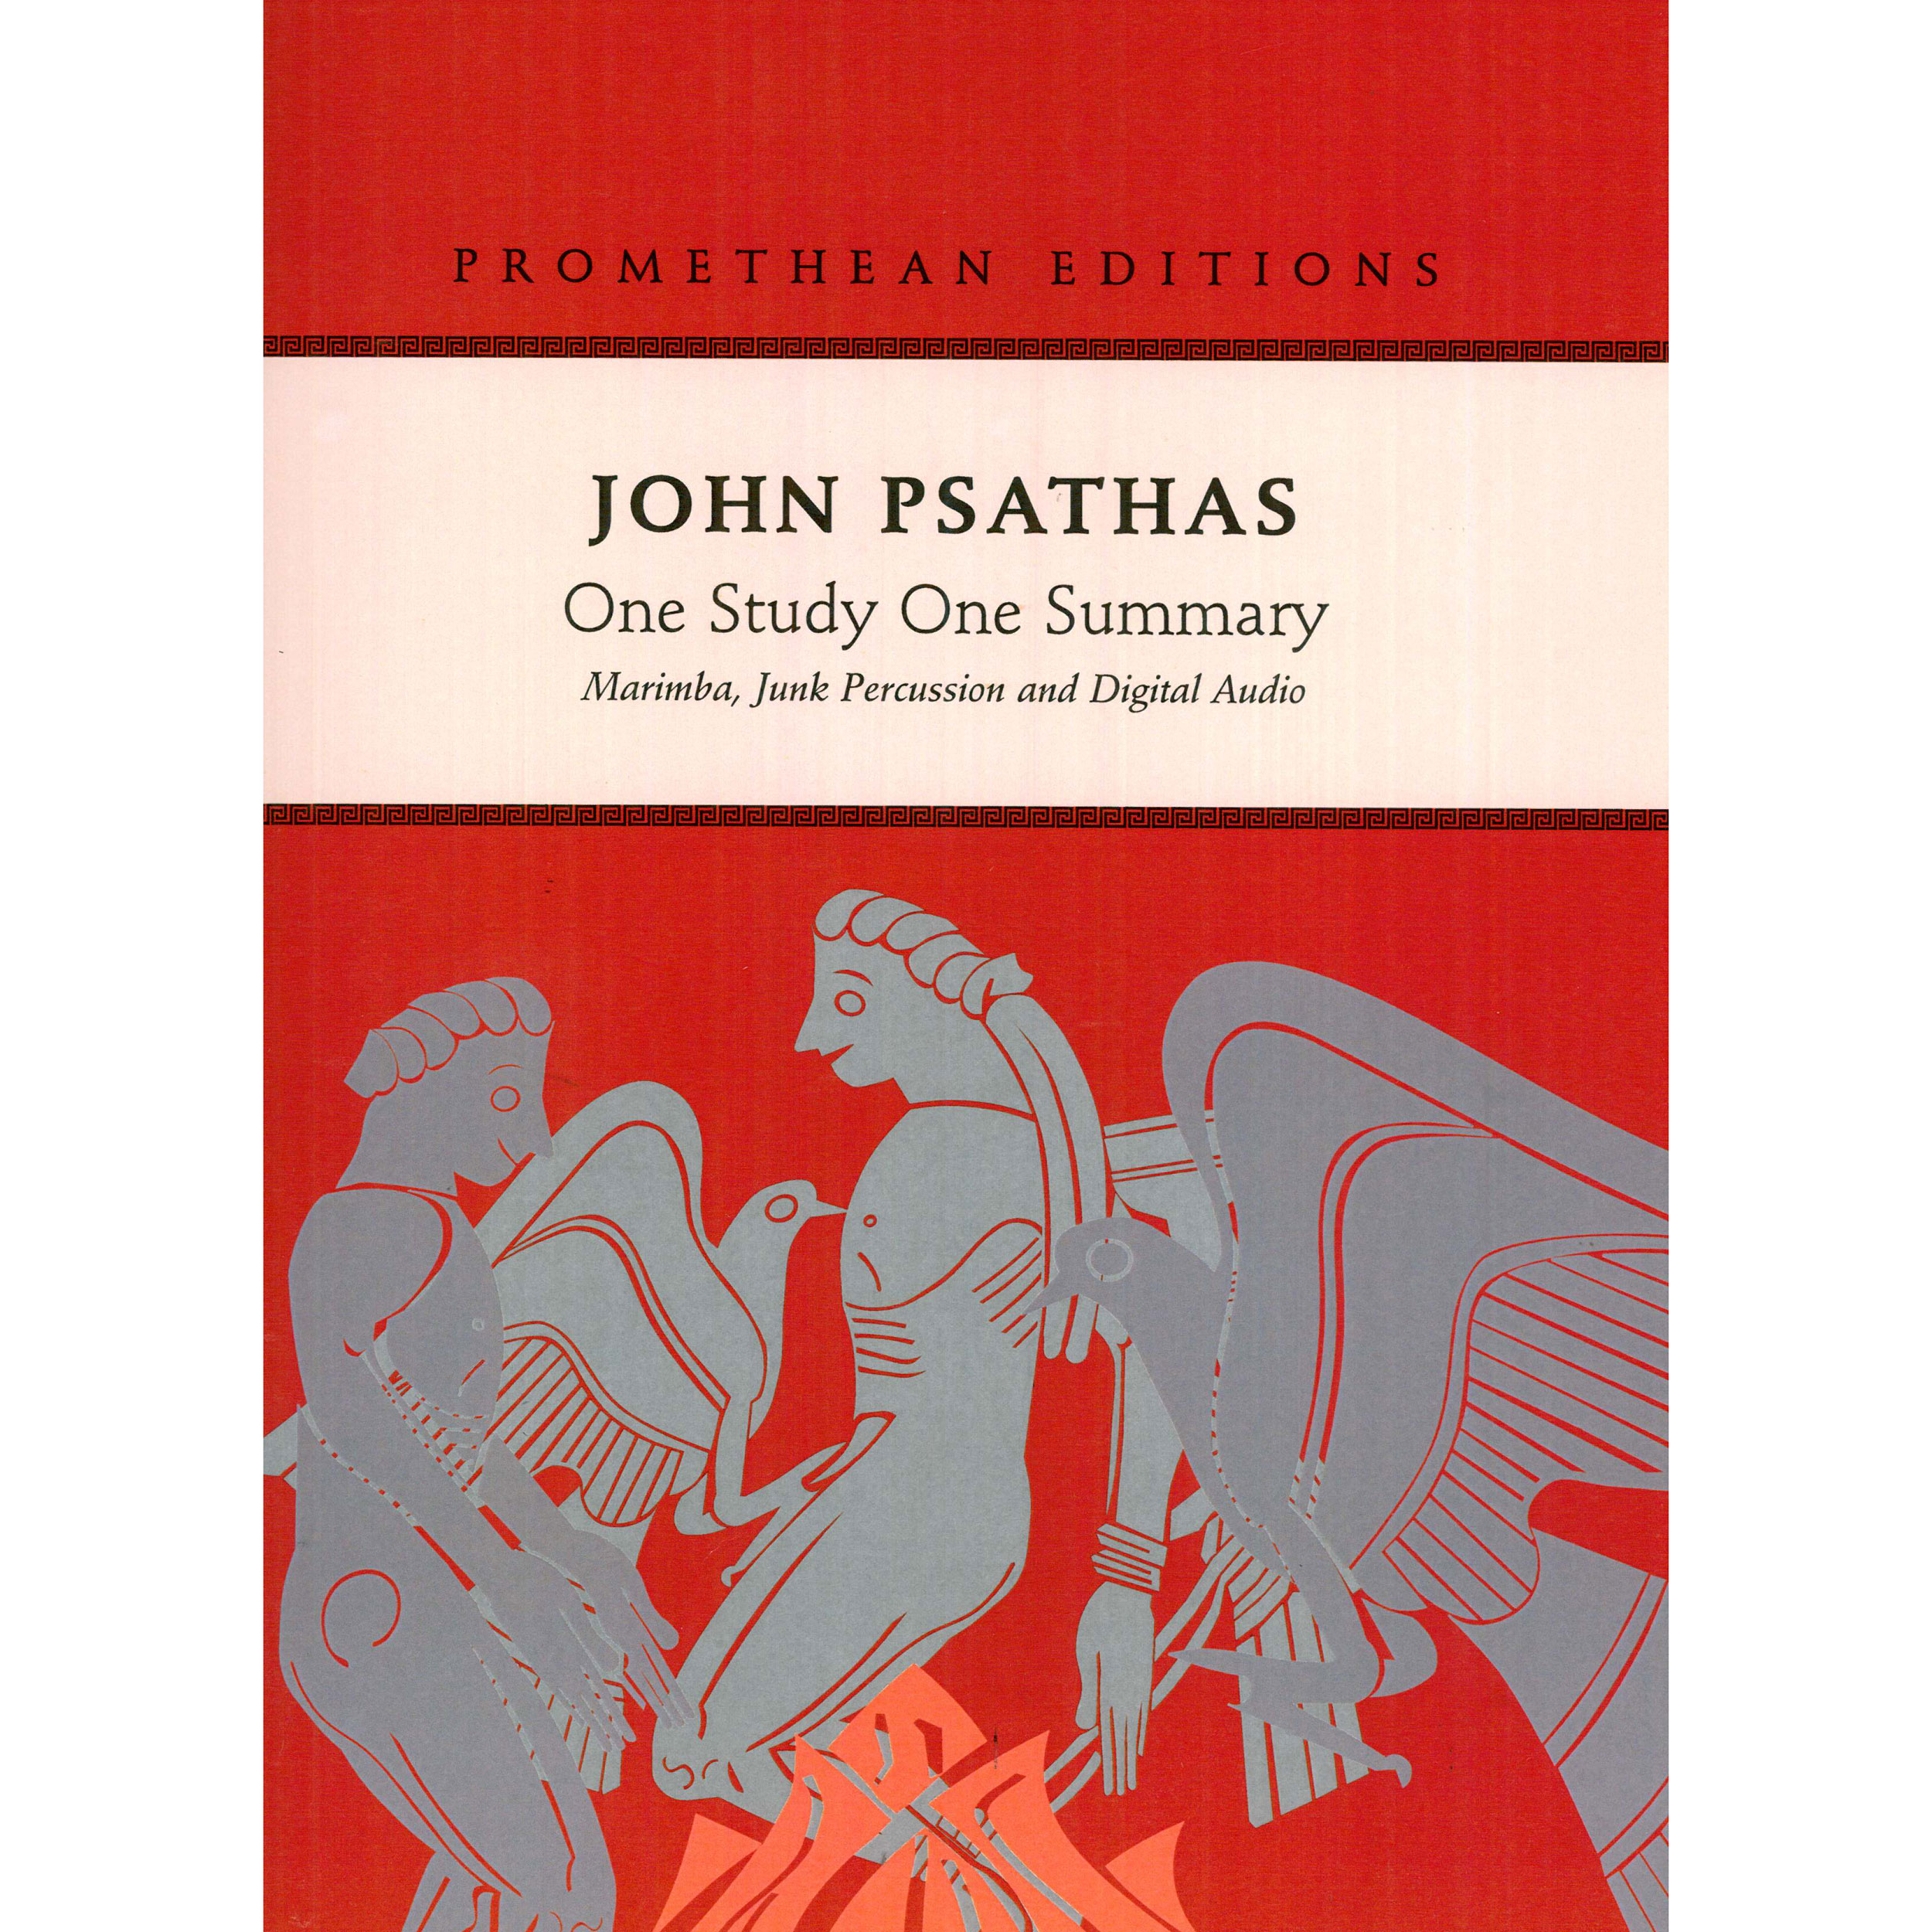 One Study One Summary by John Psathas